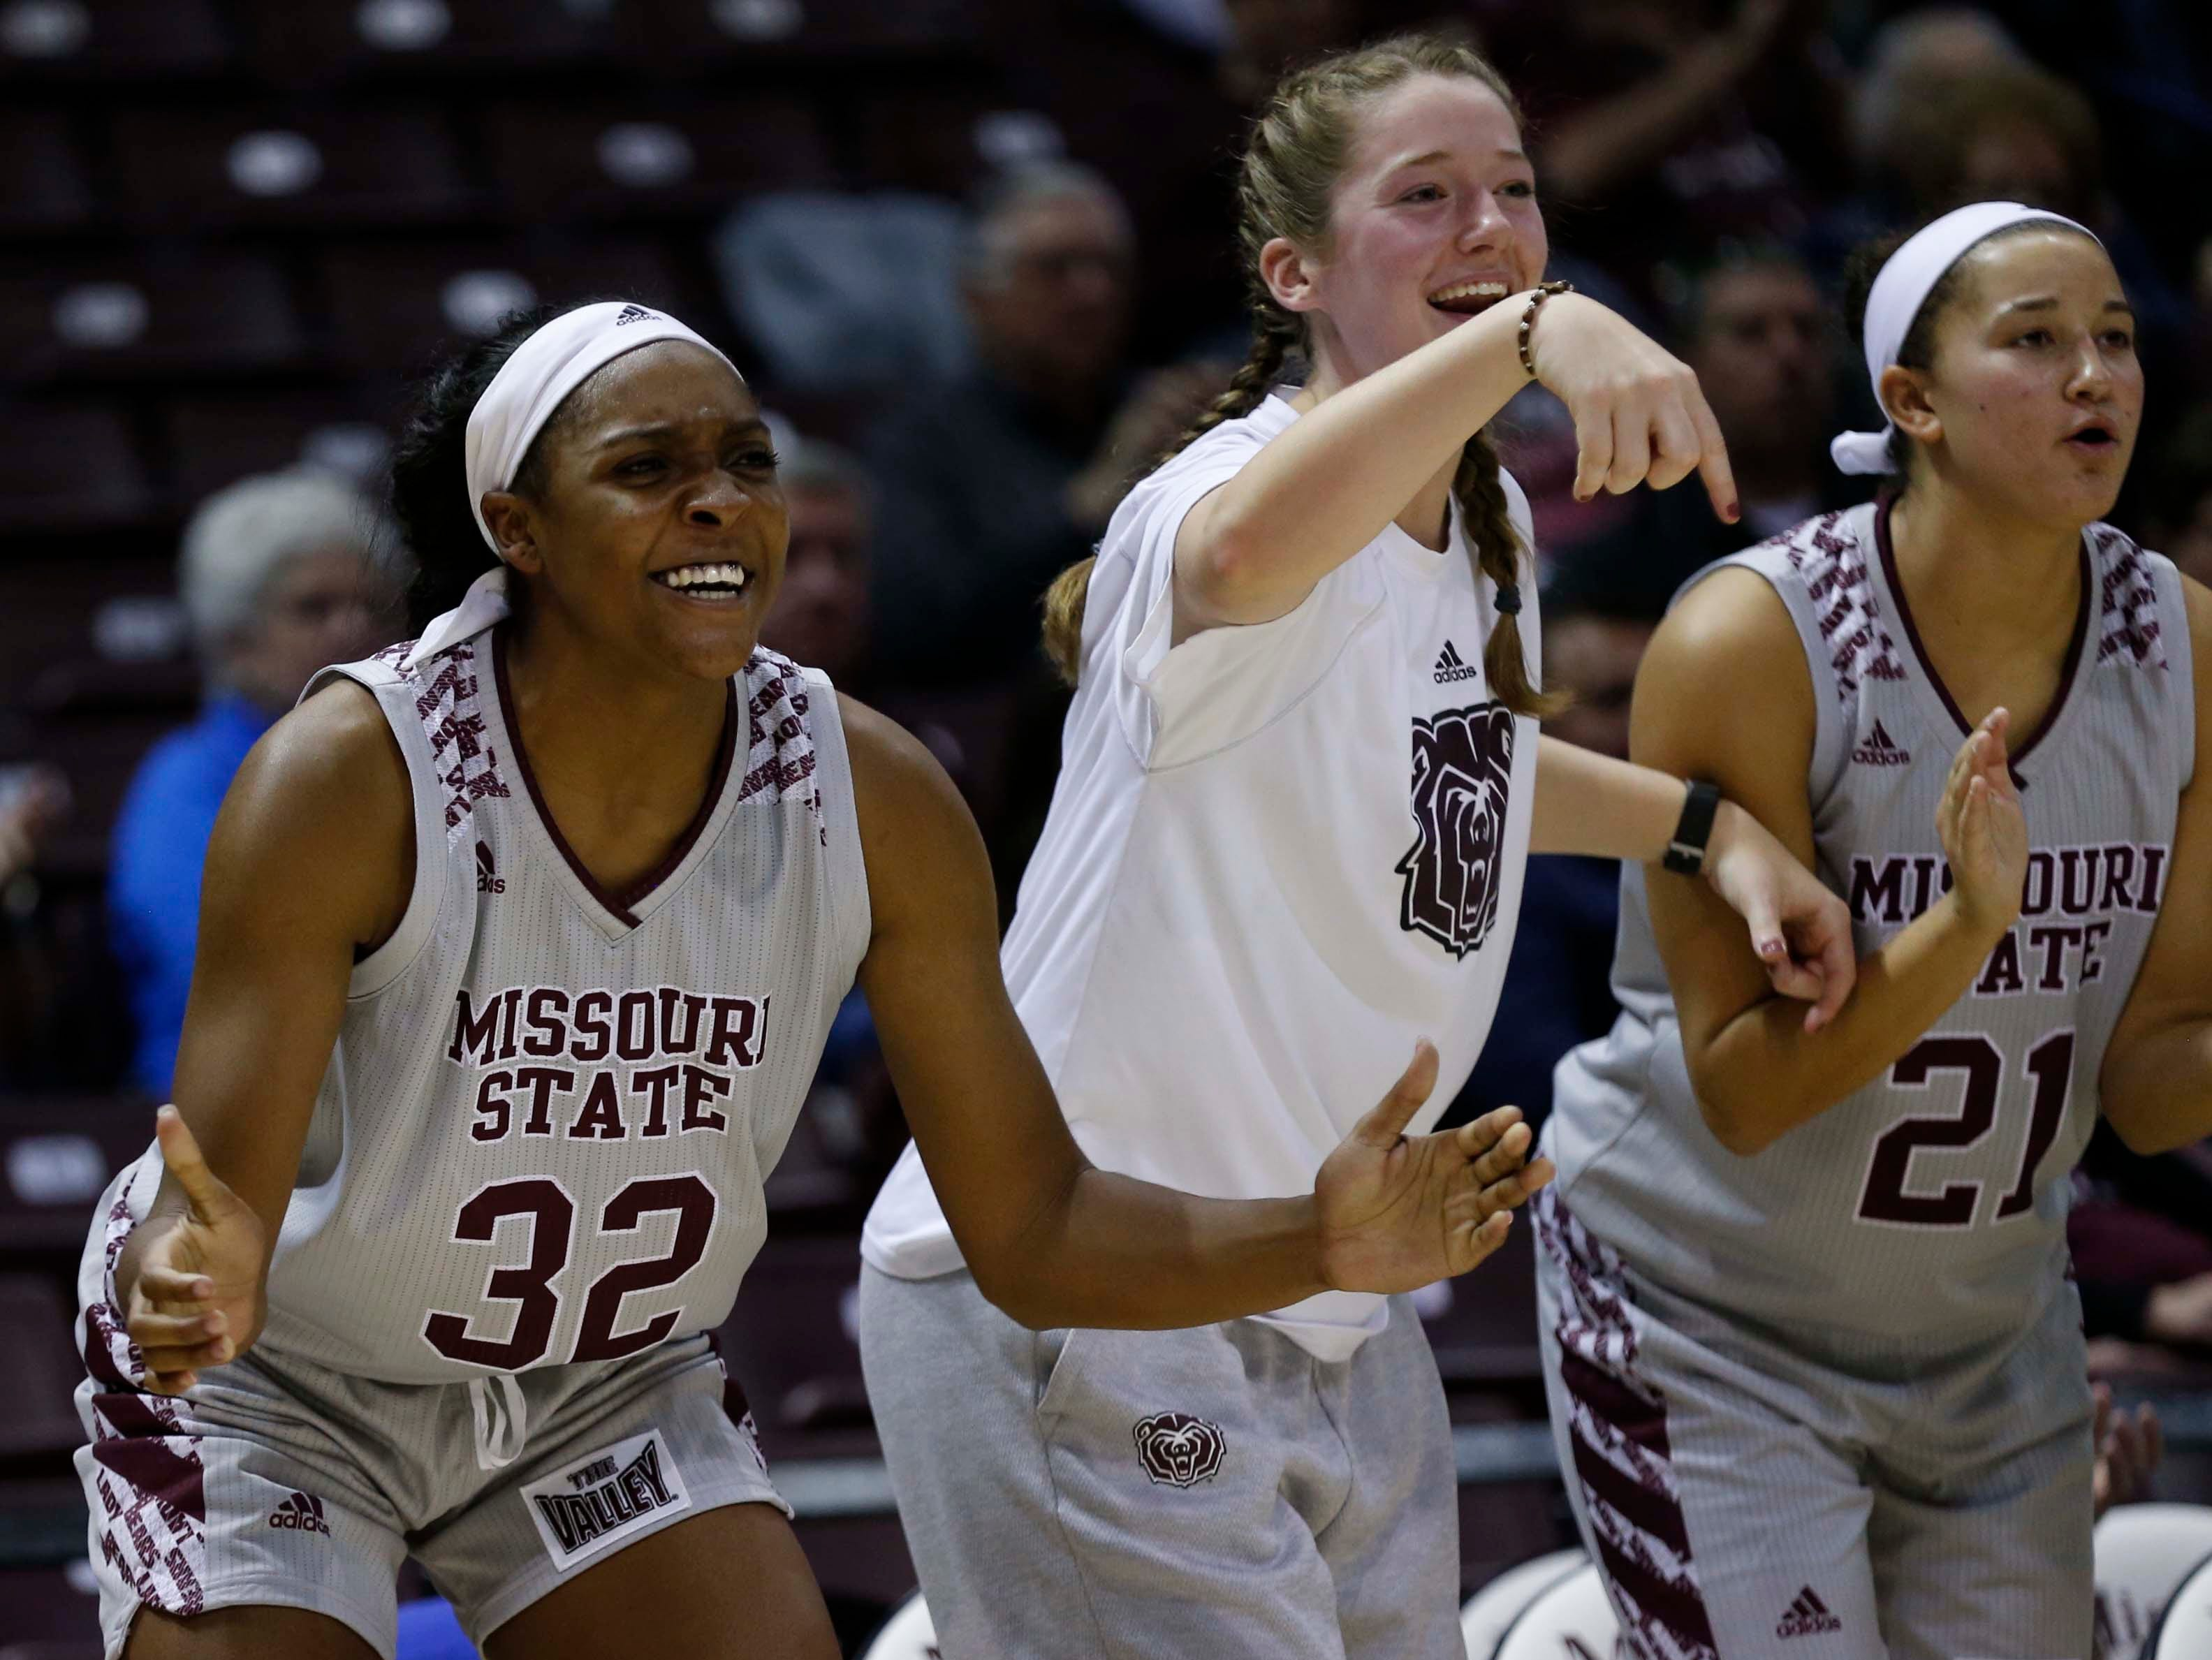 The Missouri State Lady Bears against Ball State University at JQH Arena in Springfield on November 17, 2018.